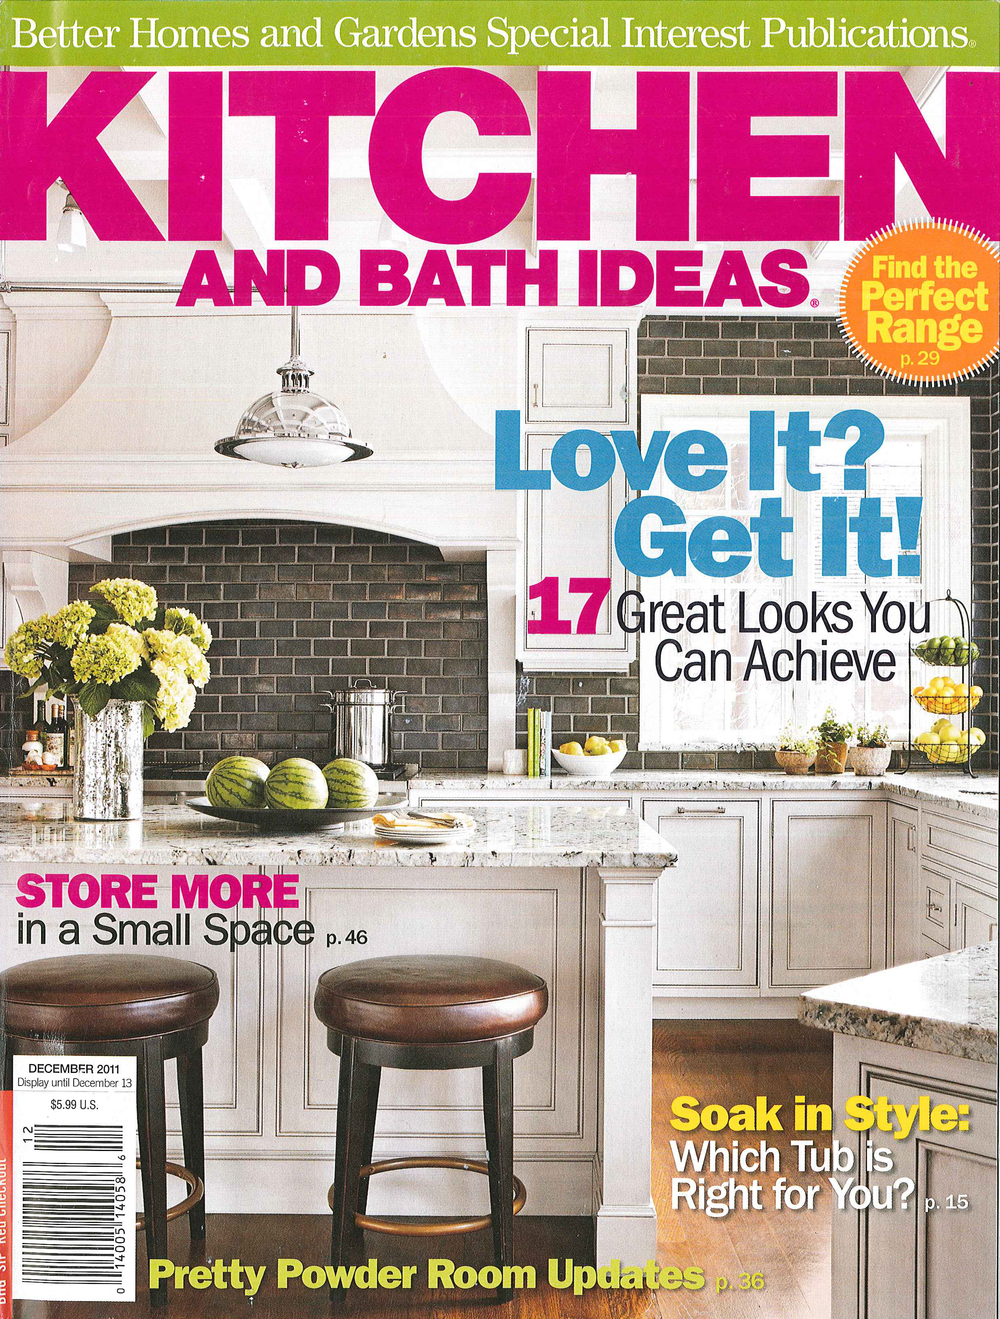 Otis Street Better H&G Kitchen and Bath Ideas Cover.jpg